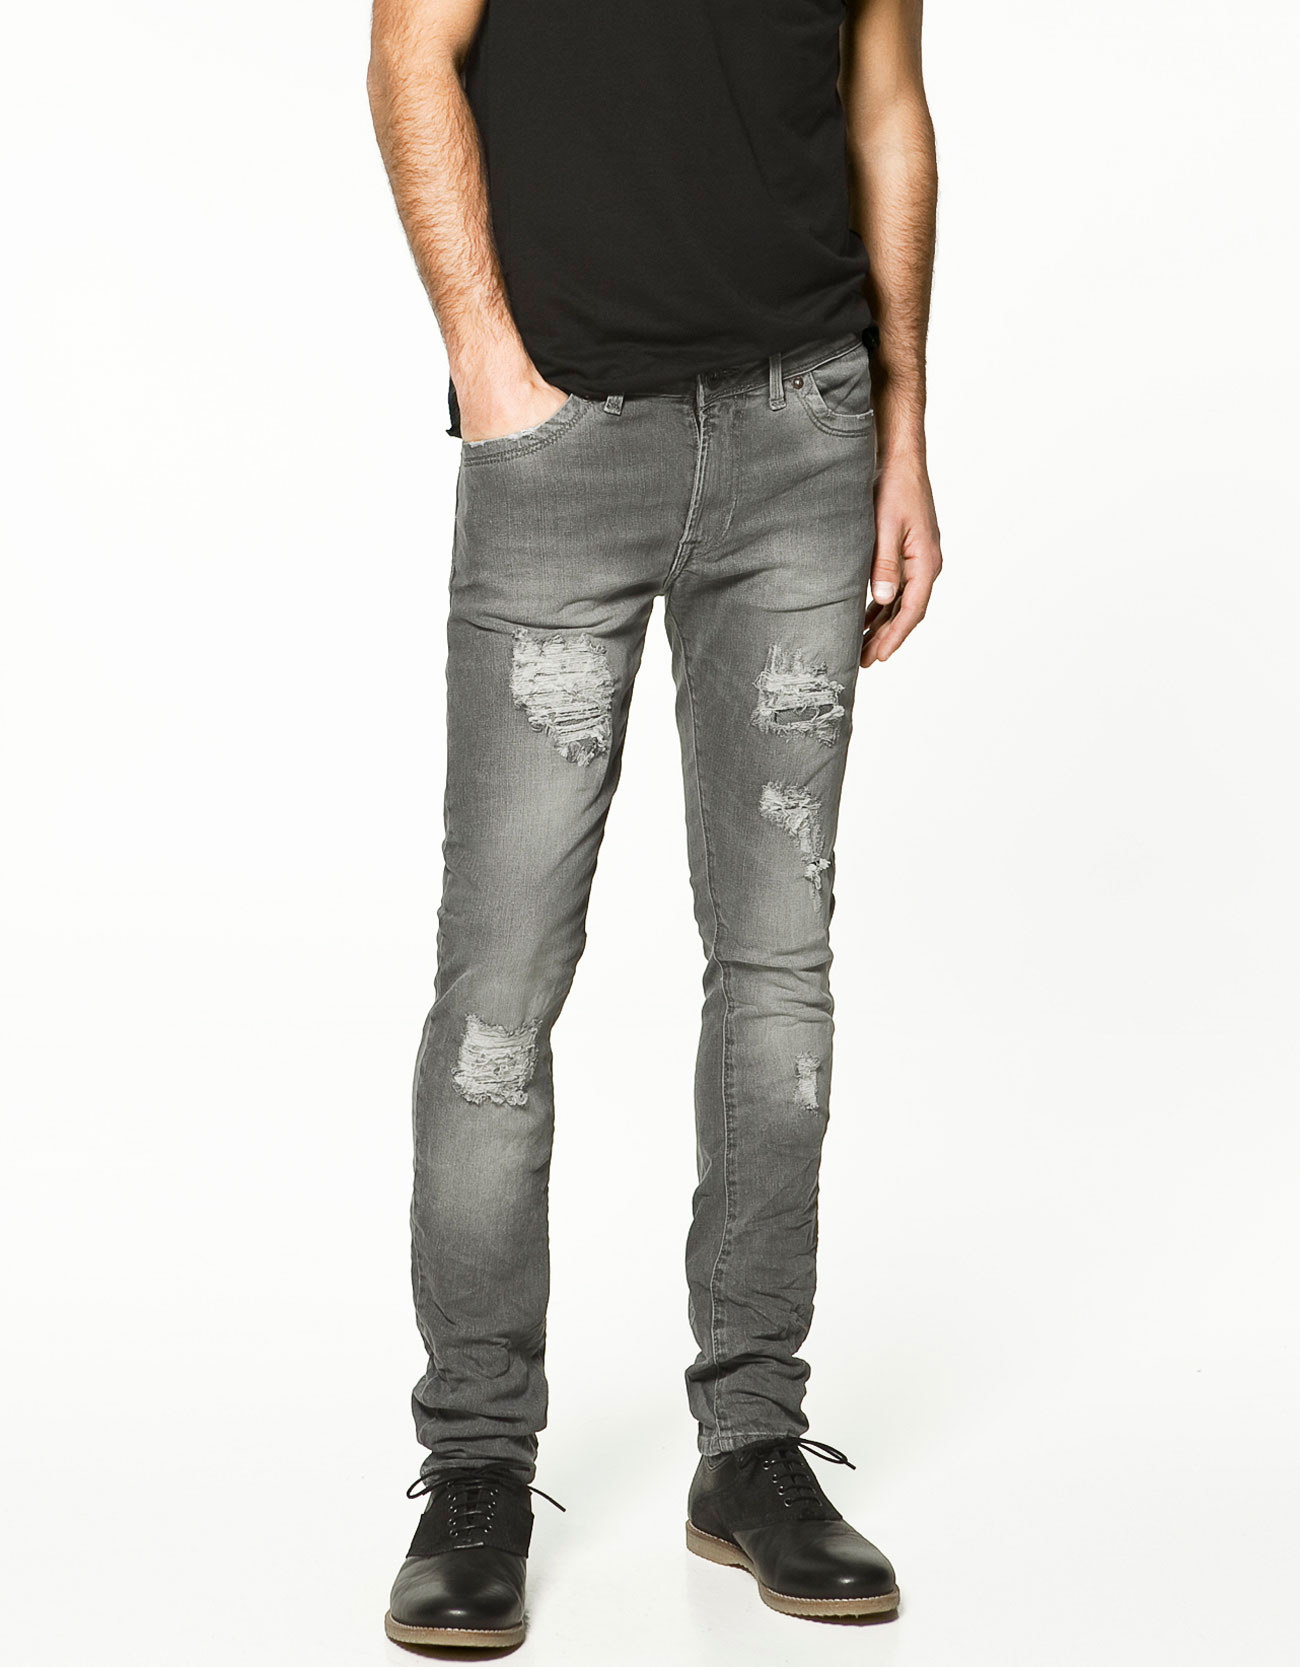 Enjoy free shipping and easy returns every day at Kohl's. Find great deals on Mens Grey Jeans at Kohl's today!